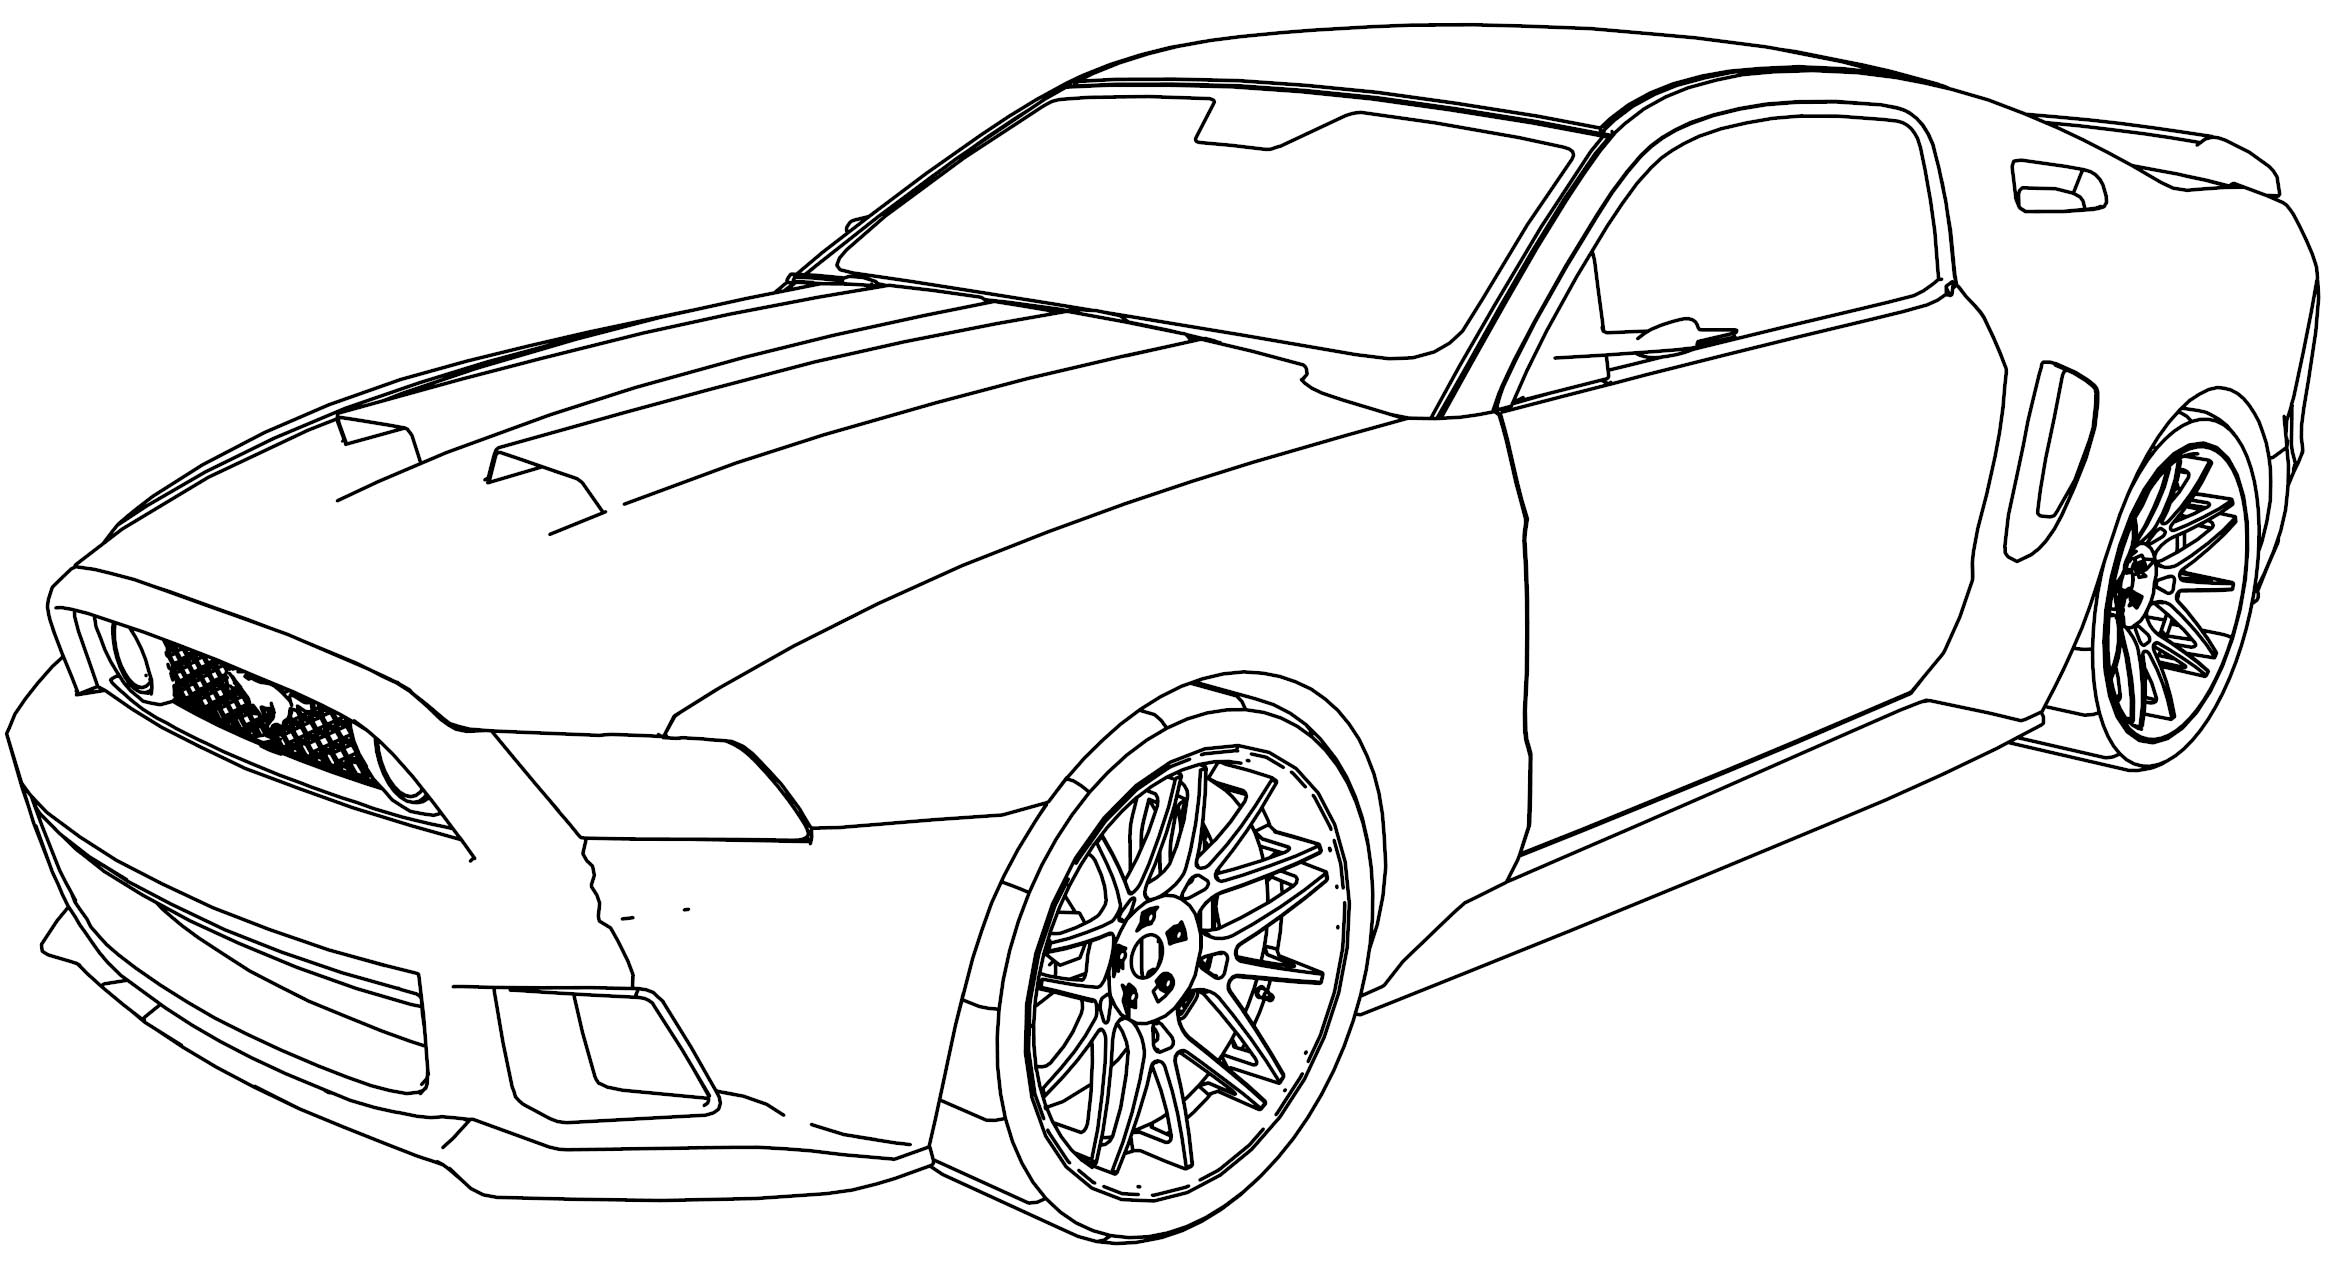 mustang gt car coloring page. Black Bedroom Furniture Sets. Home Design Ideas